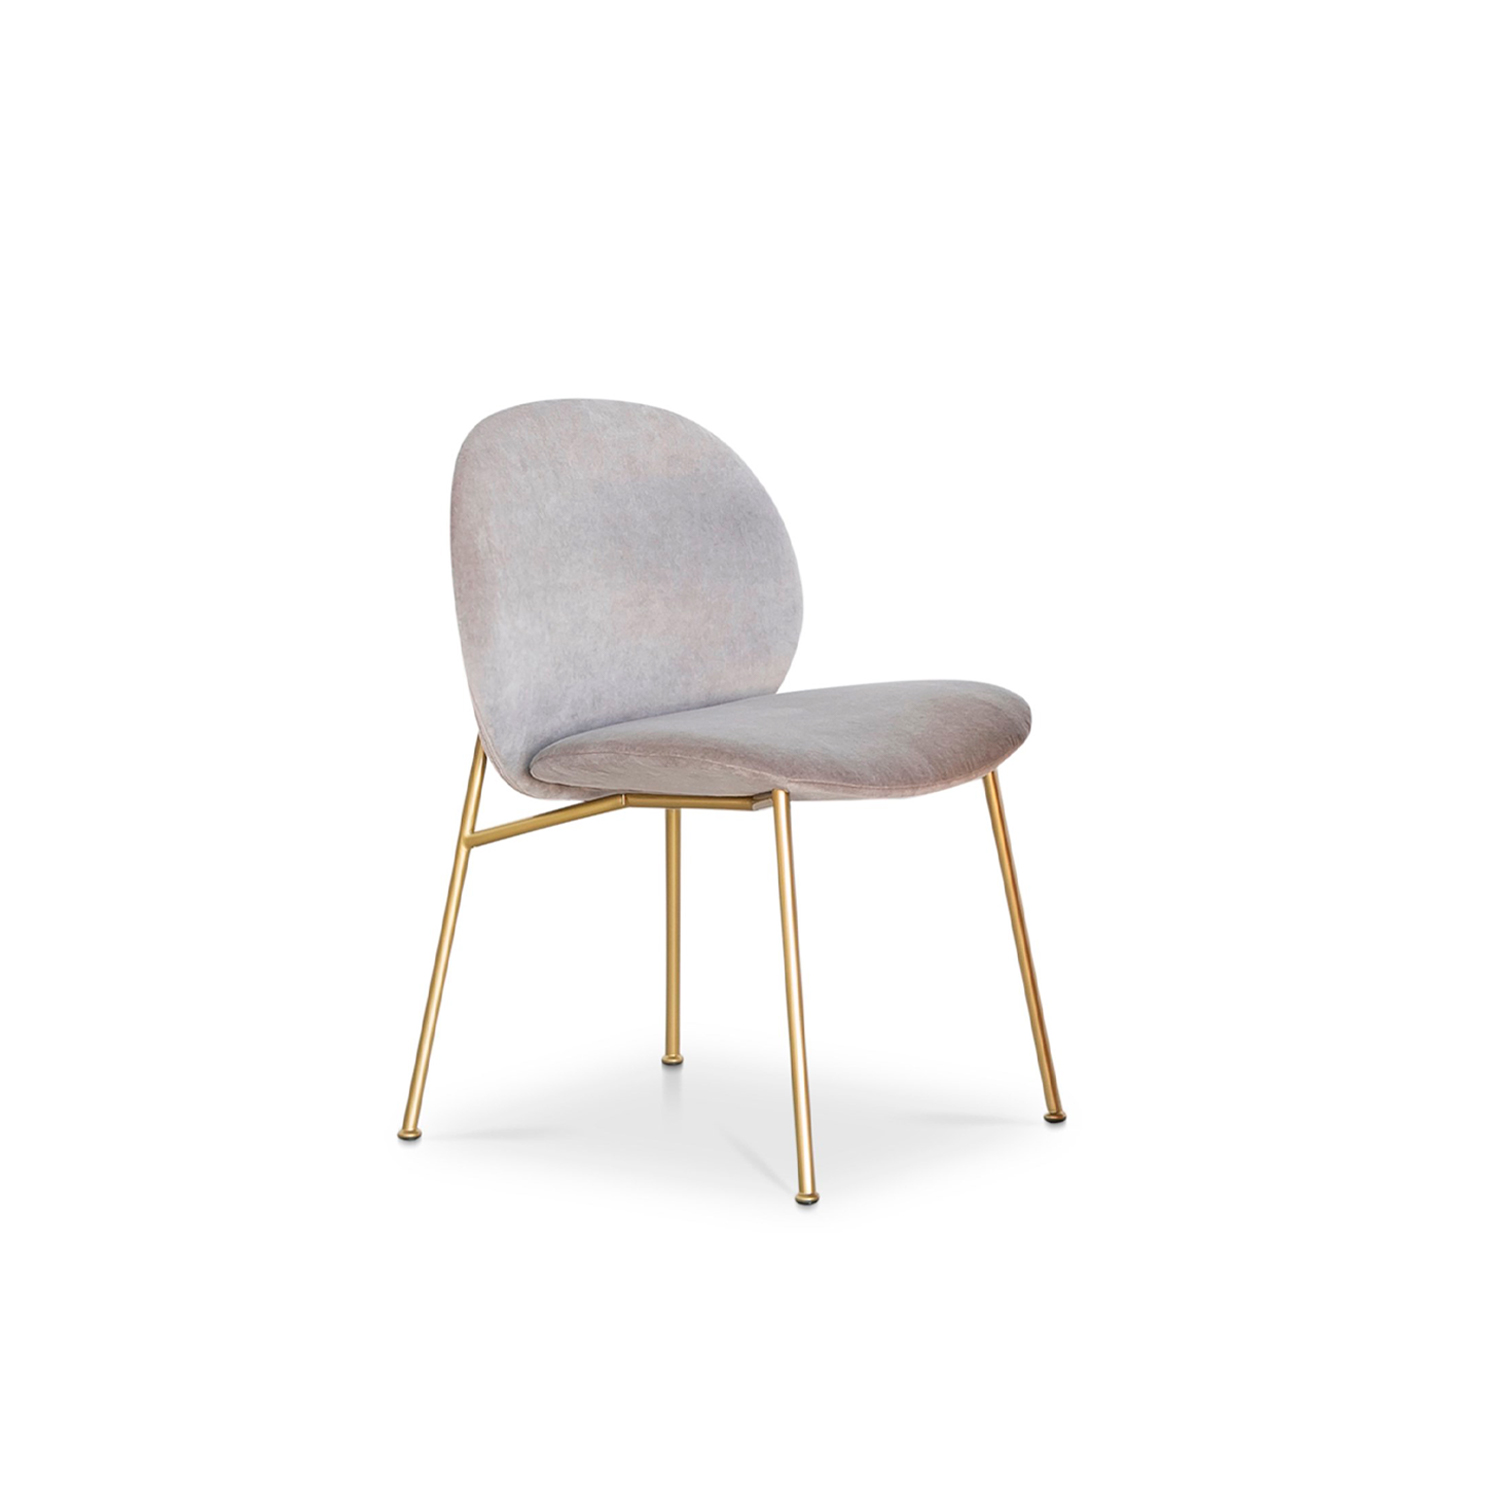 Ola Chair - The Ola family extends to the dining room: Ola chair originates from the sameconcept of curved sheets, each converging towards a single centre point. Foursheets become two sheets for the variation without armrests. The metal framehas an essential and graphic silhouette, in contrast with the padded and roundedform. Fully removable covers.  Additional removable cover is available, please enquire for prices.  Materials Structure in plywood curved birch with polyurethane foam covered with polyester fiber 100gr/sqm. Feat in 18 mm of diameter painted or chromed iron. Seating is made in polyurethane foam and covered with polyester fiber 100gr/sqm. Backrest and armrests are made in polyurethane foam and covered with polyester fiber 100gr/sqm. | Matter of Stuff